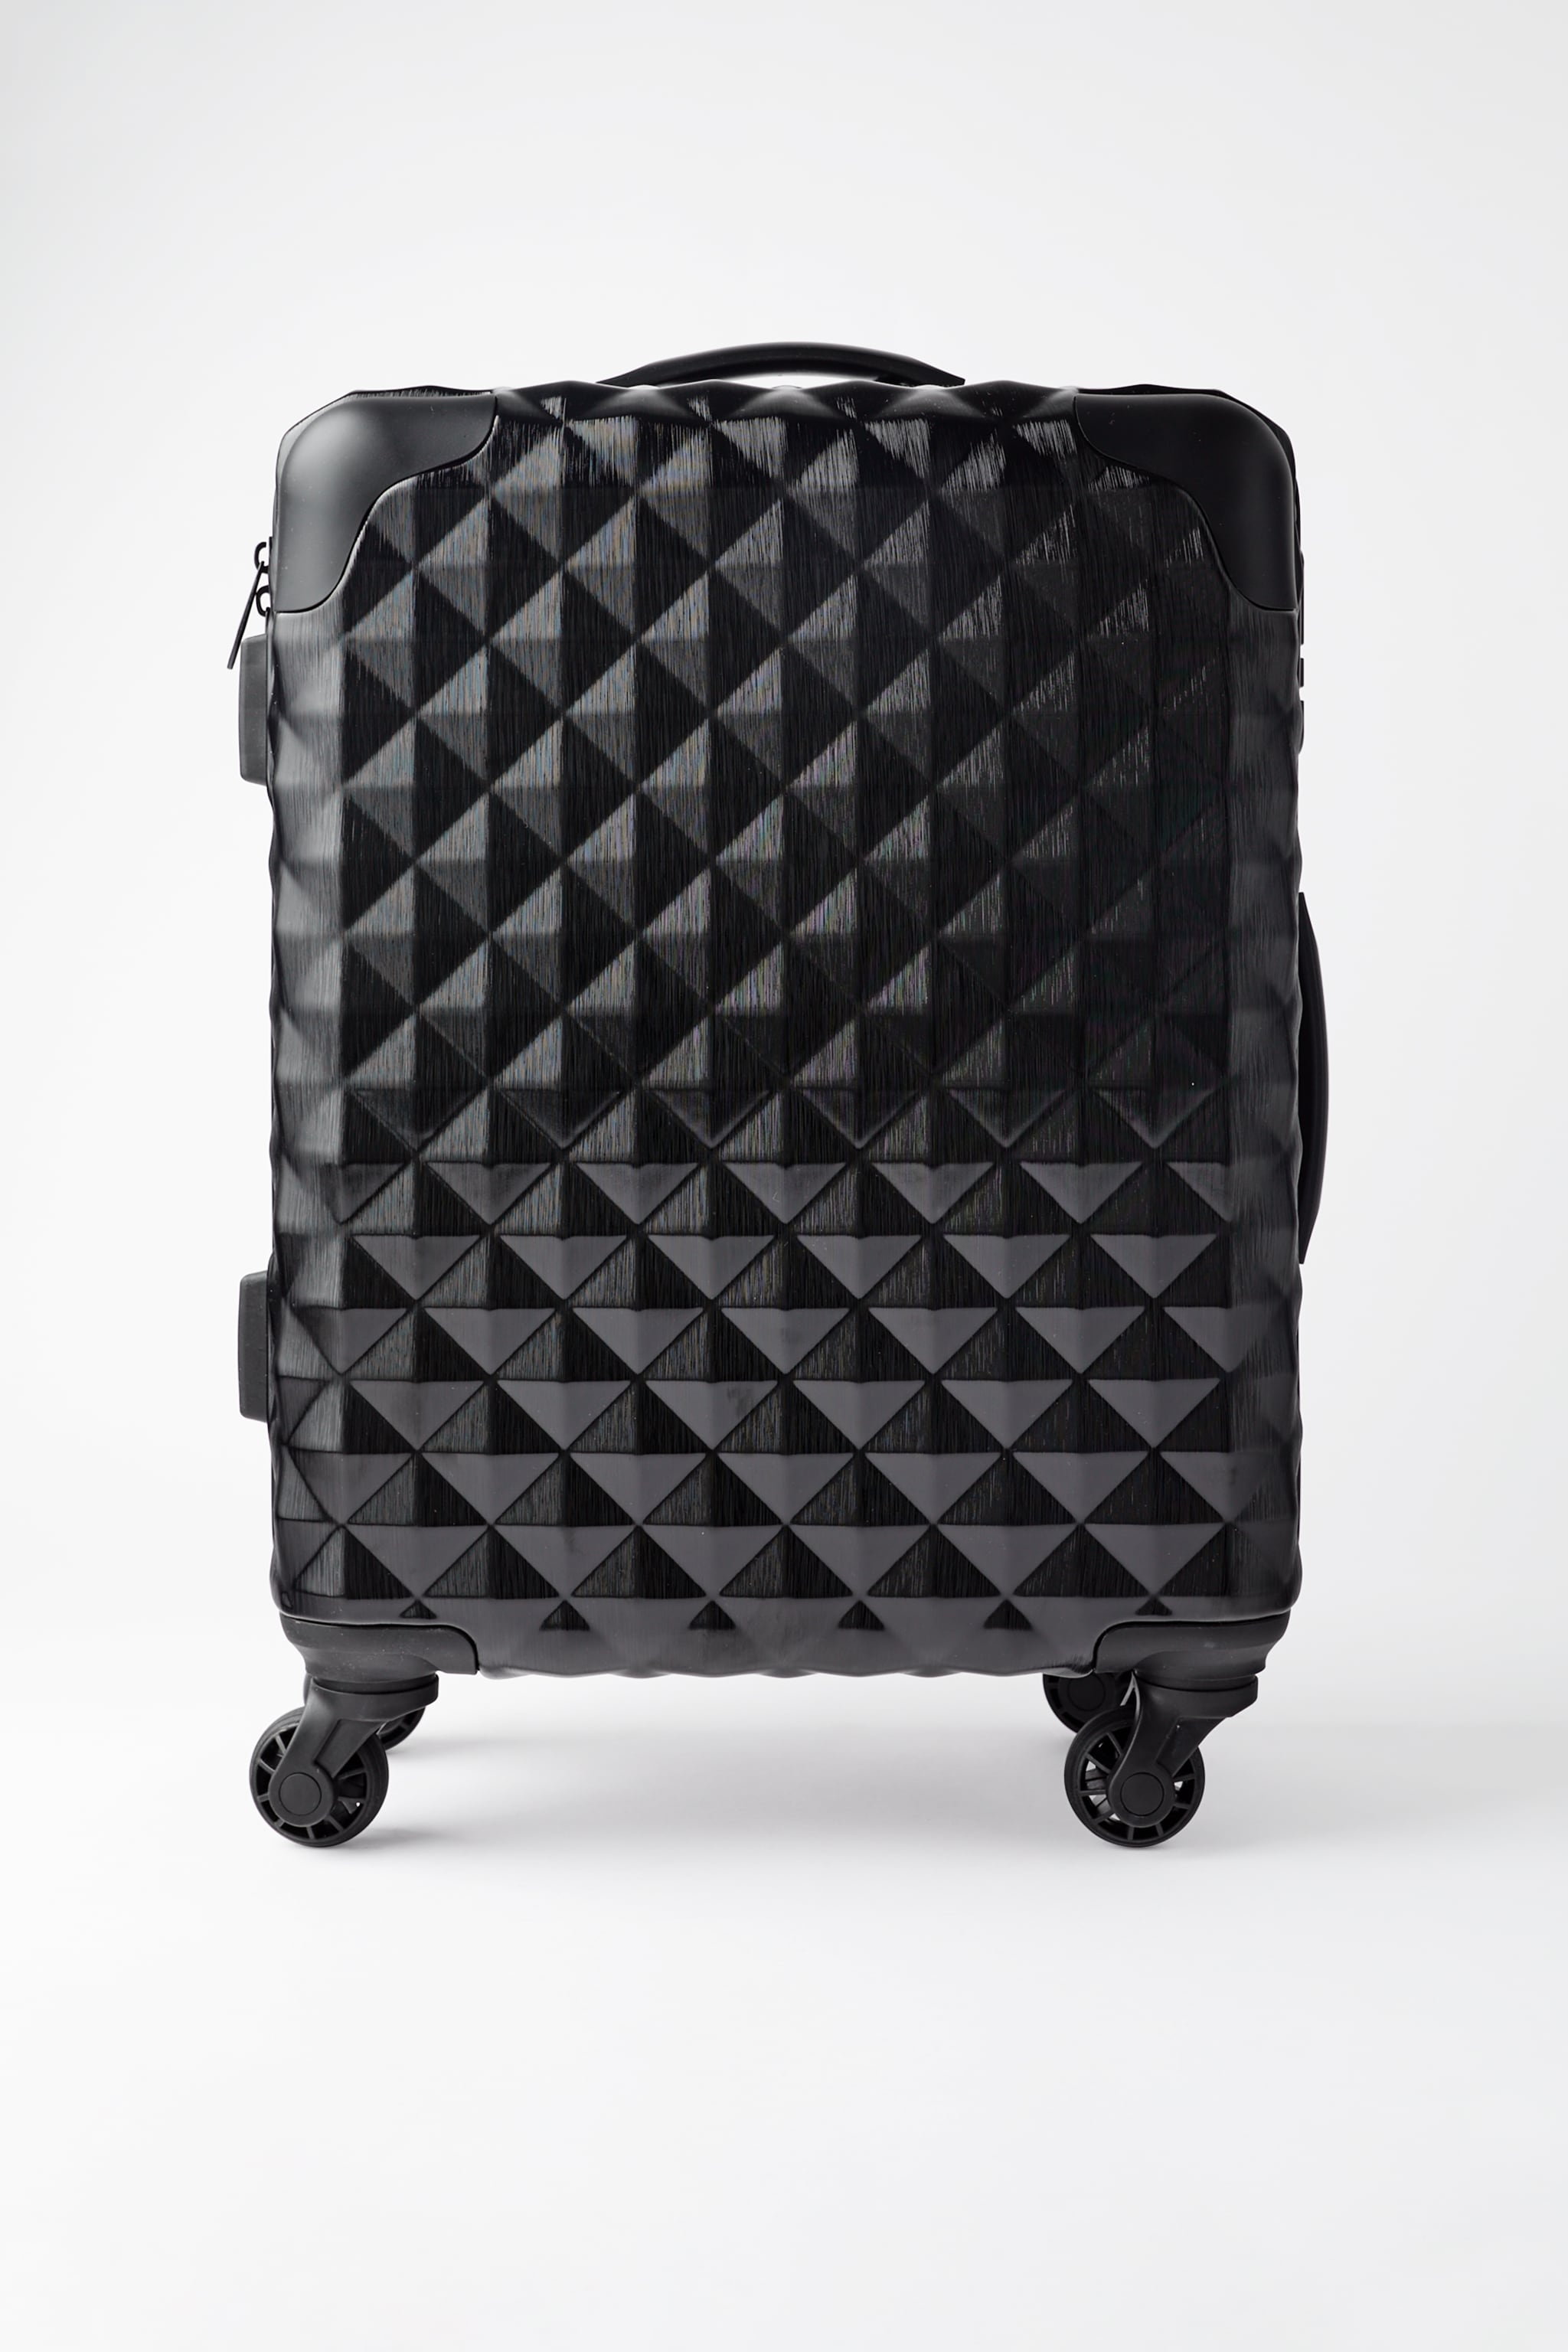 RIGID TEXTURED CARRY-ON SUITCASE